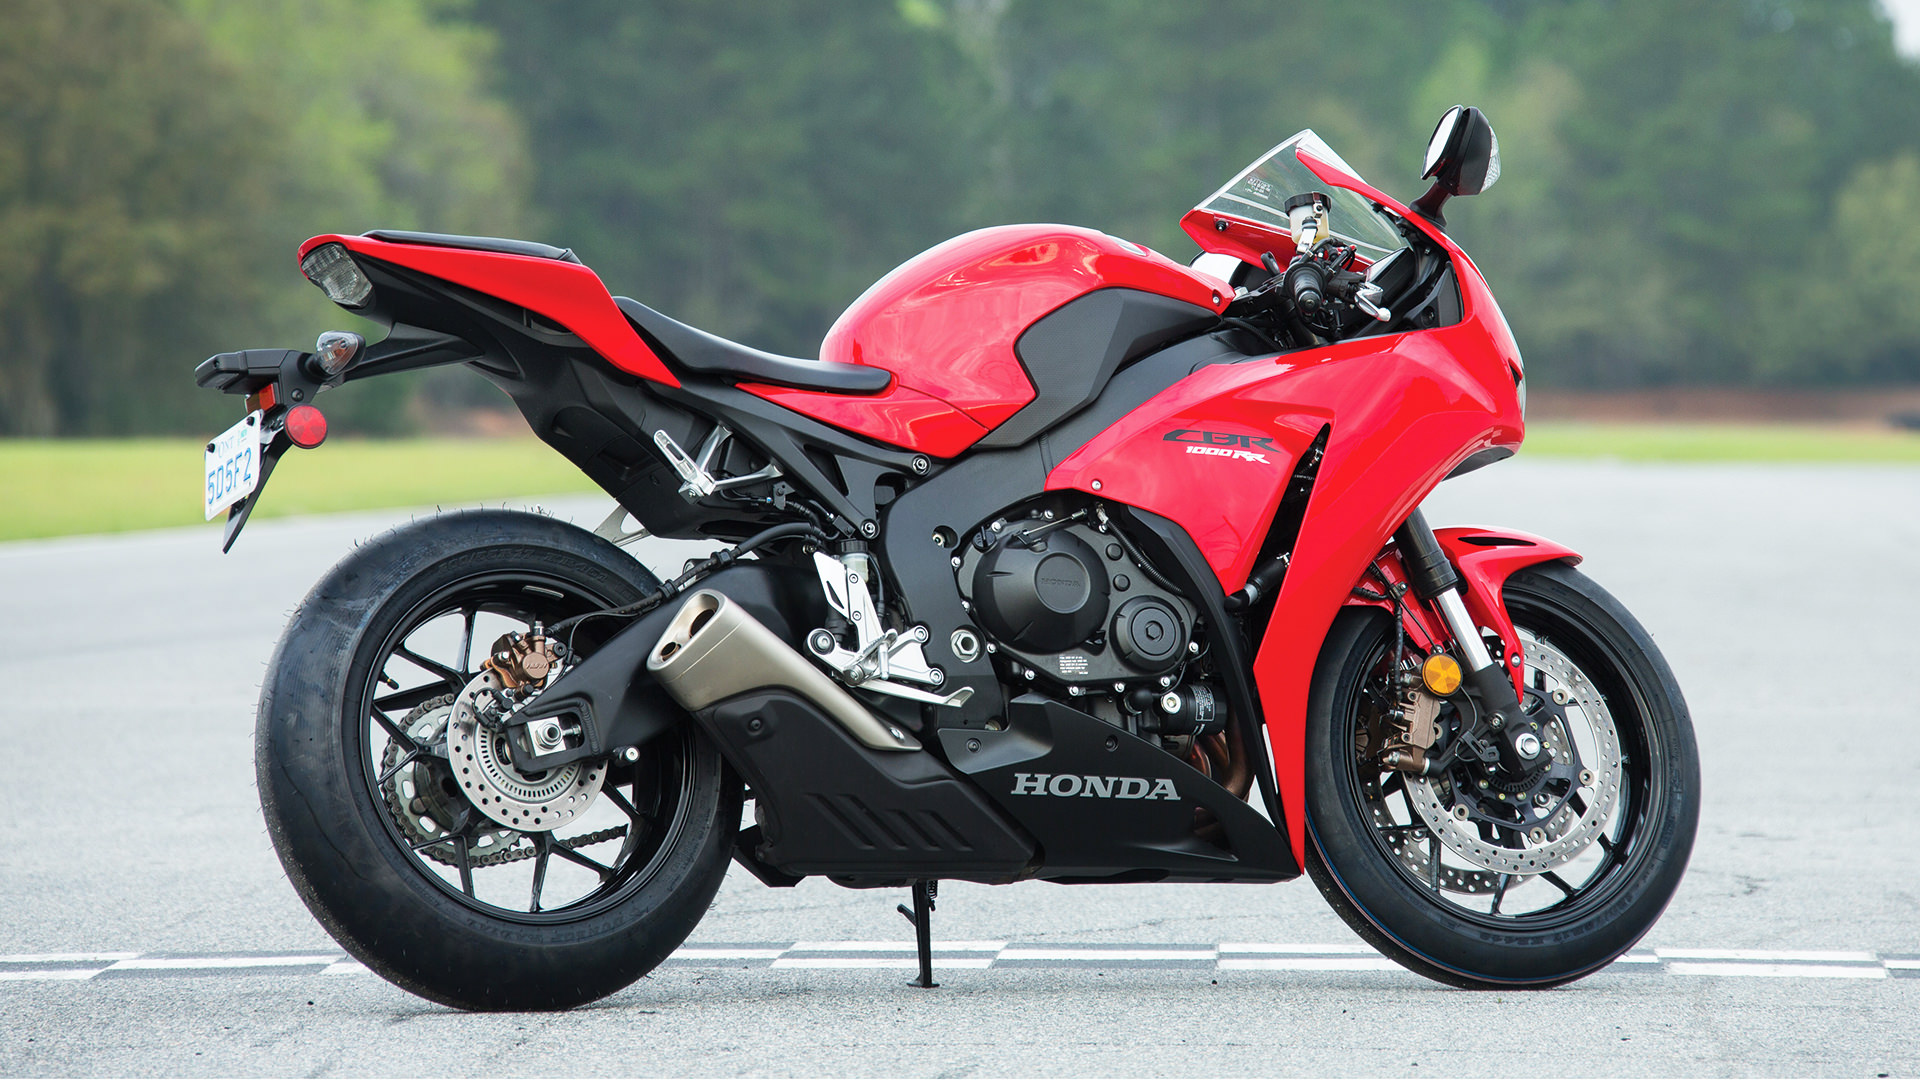 2015 Honda Cbr1000rr Review Specs Pictures Videos Pro Wiring Diagram 2004 From To Date The Cbr1000rrs Story Is One Of Constant Evolution And Development Hondas Total Control Concept A Design Philosophy Running